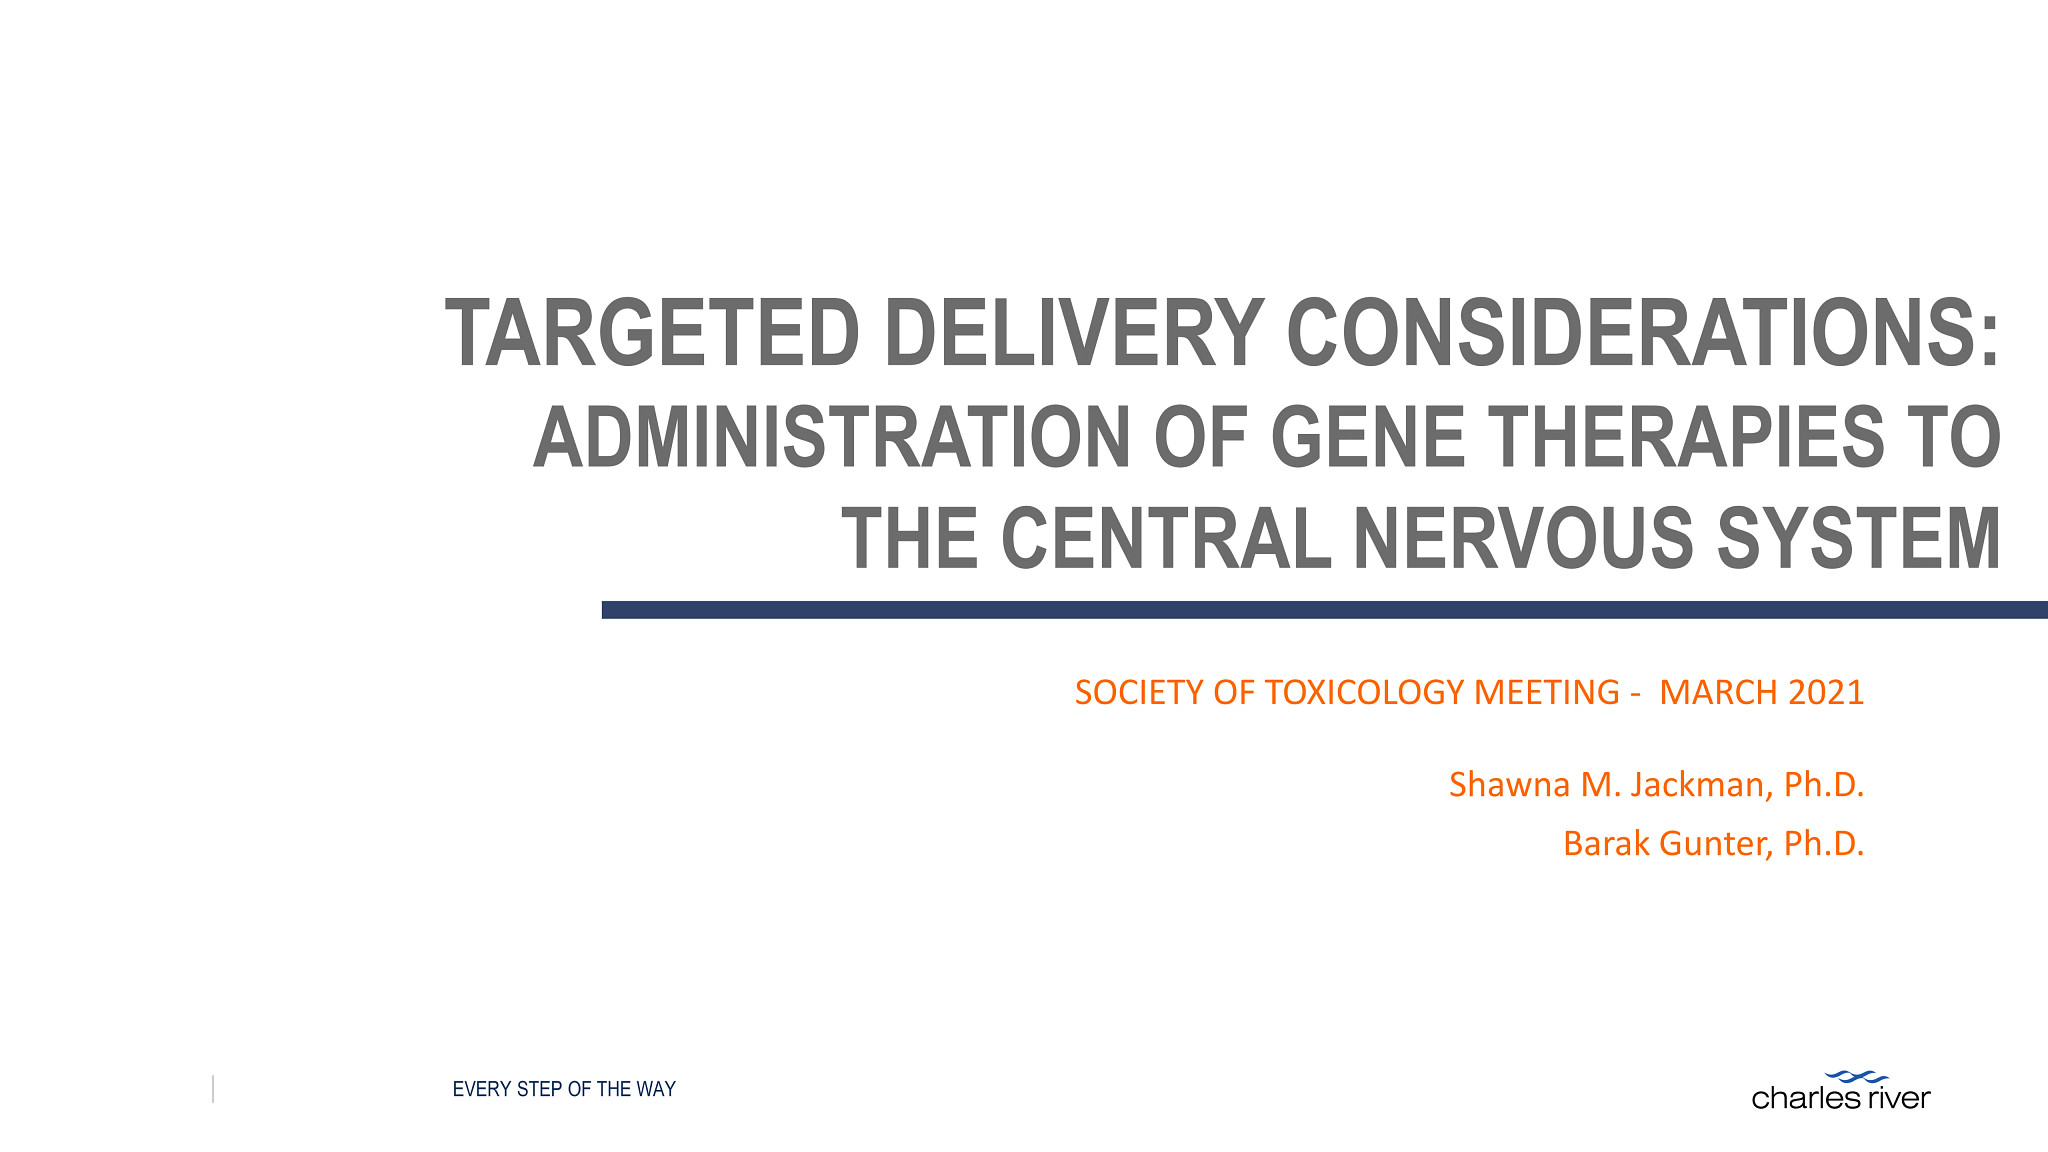 Screen shot of Targeted Delivery Considerations for Administrations of Gene Therapies to the Central Nervous System